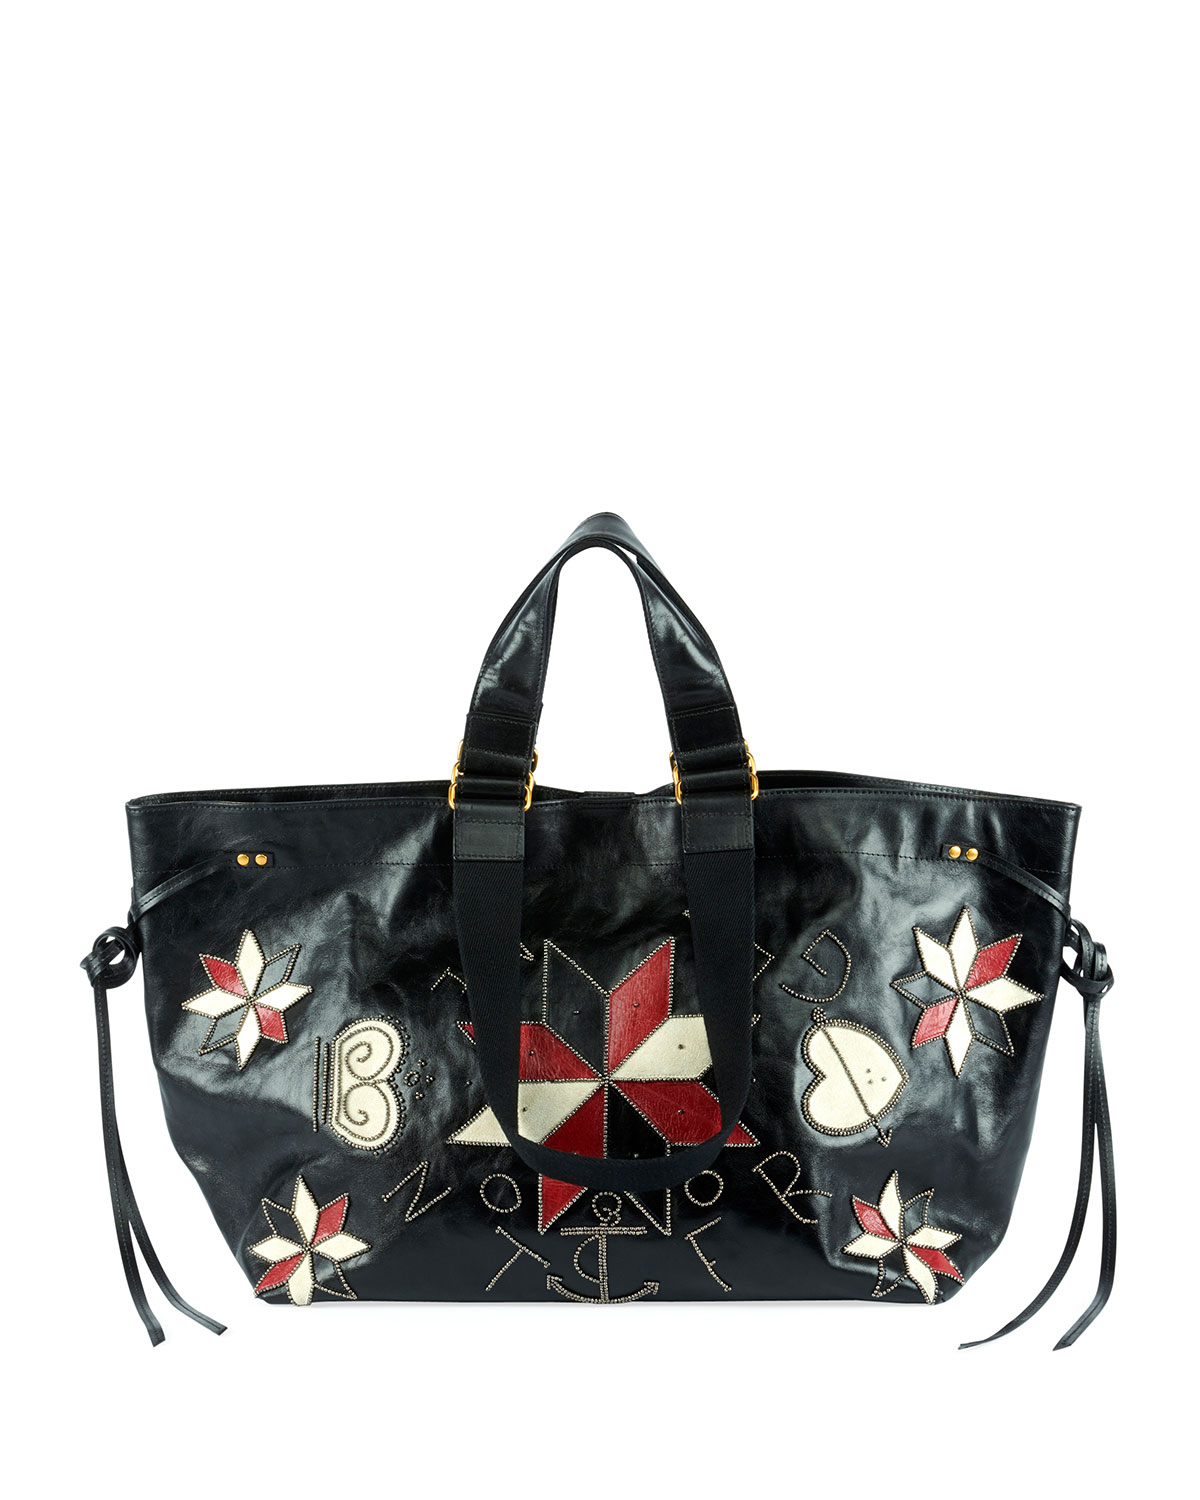 Wardy Patchwork Shopper Tote Bag